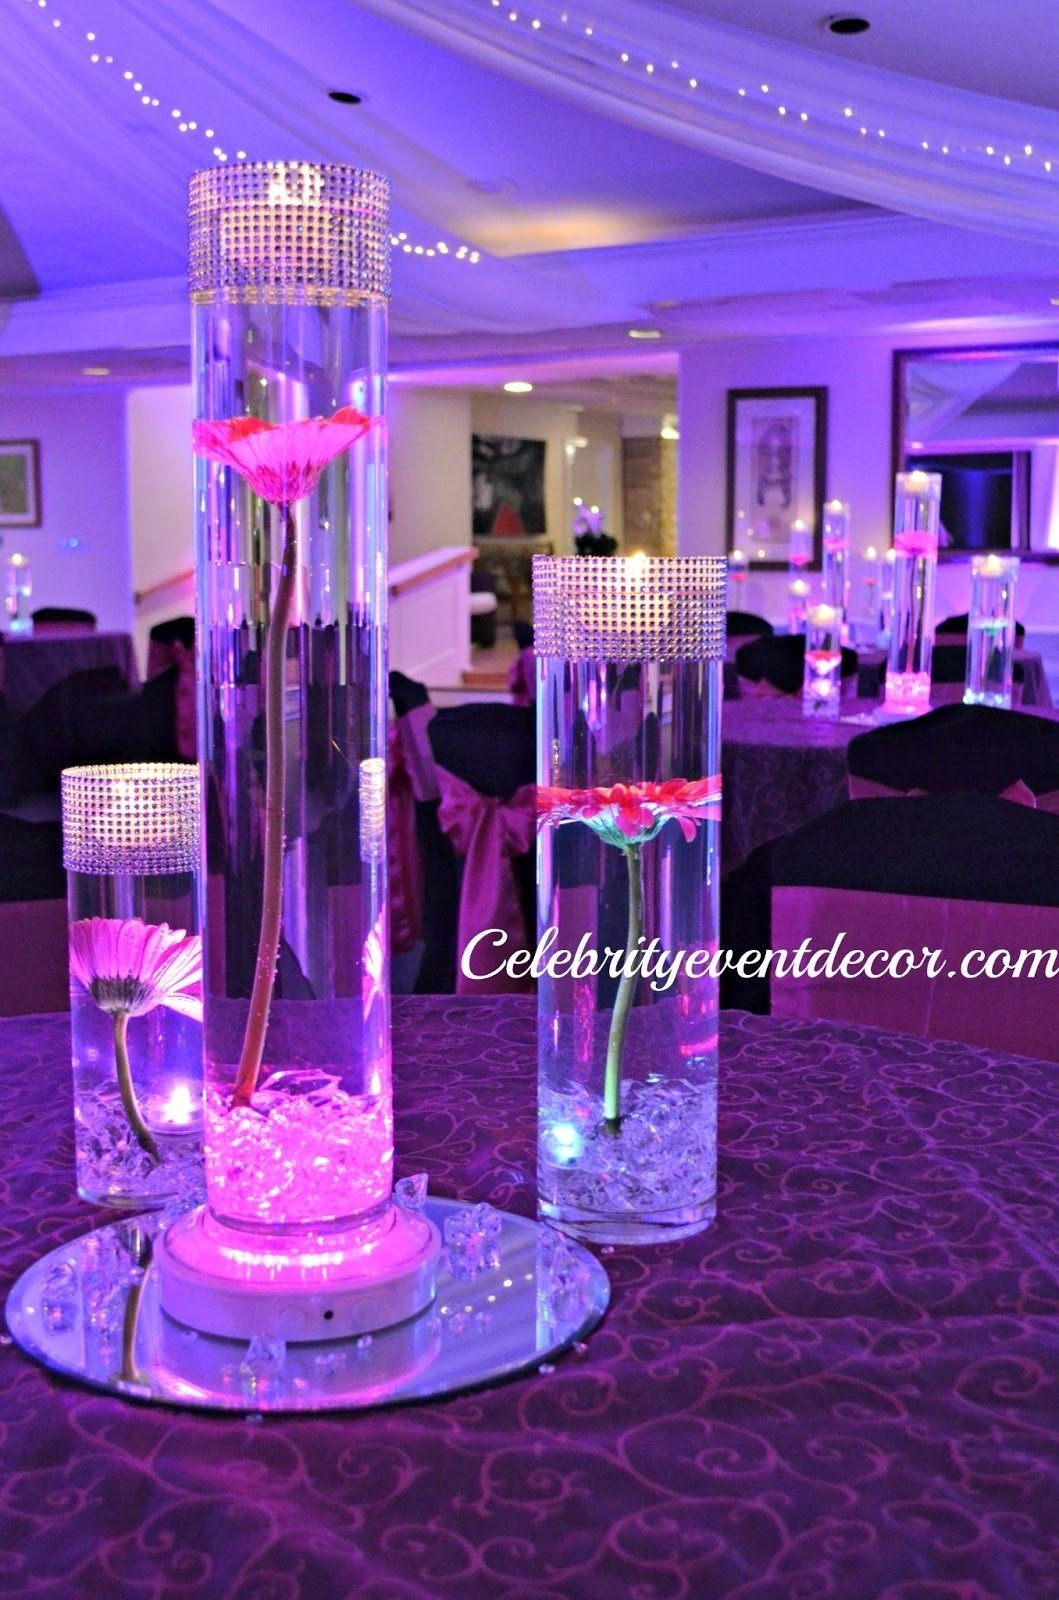 10 Lovely Unique Sweet 16 Party Ideas postedcelebrity event decor amp celebrity events banquet hall 2020